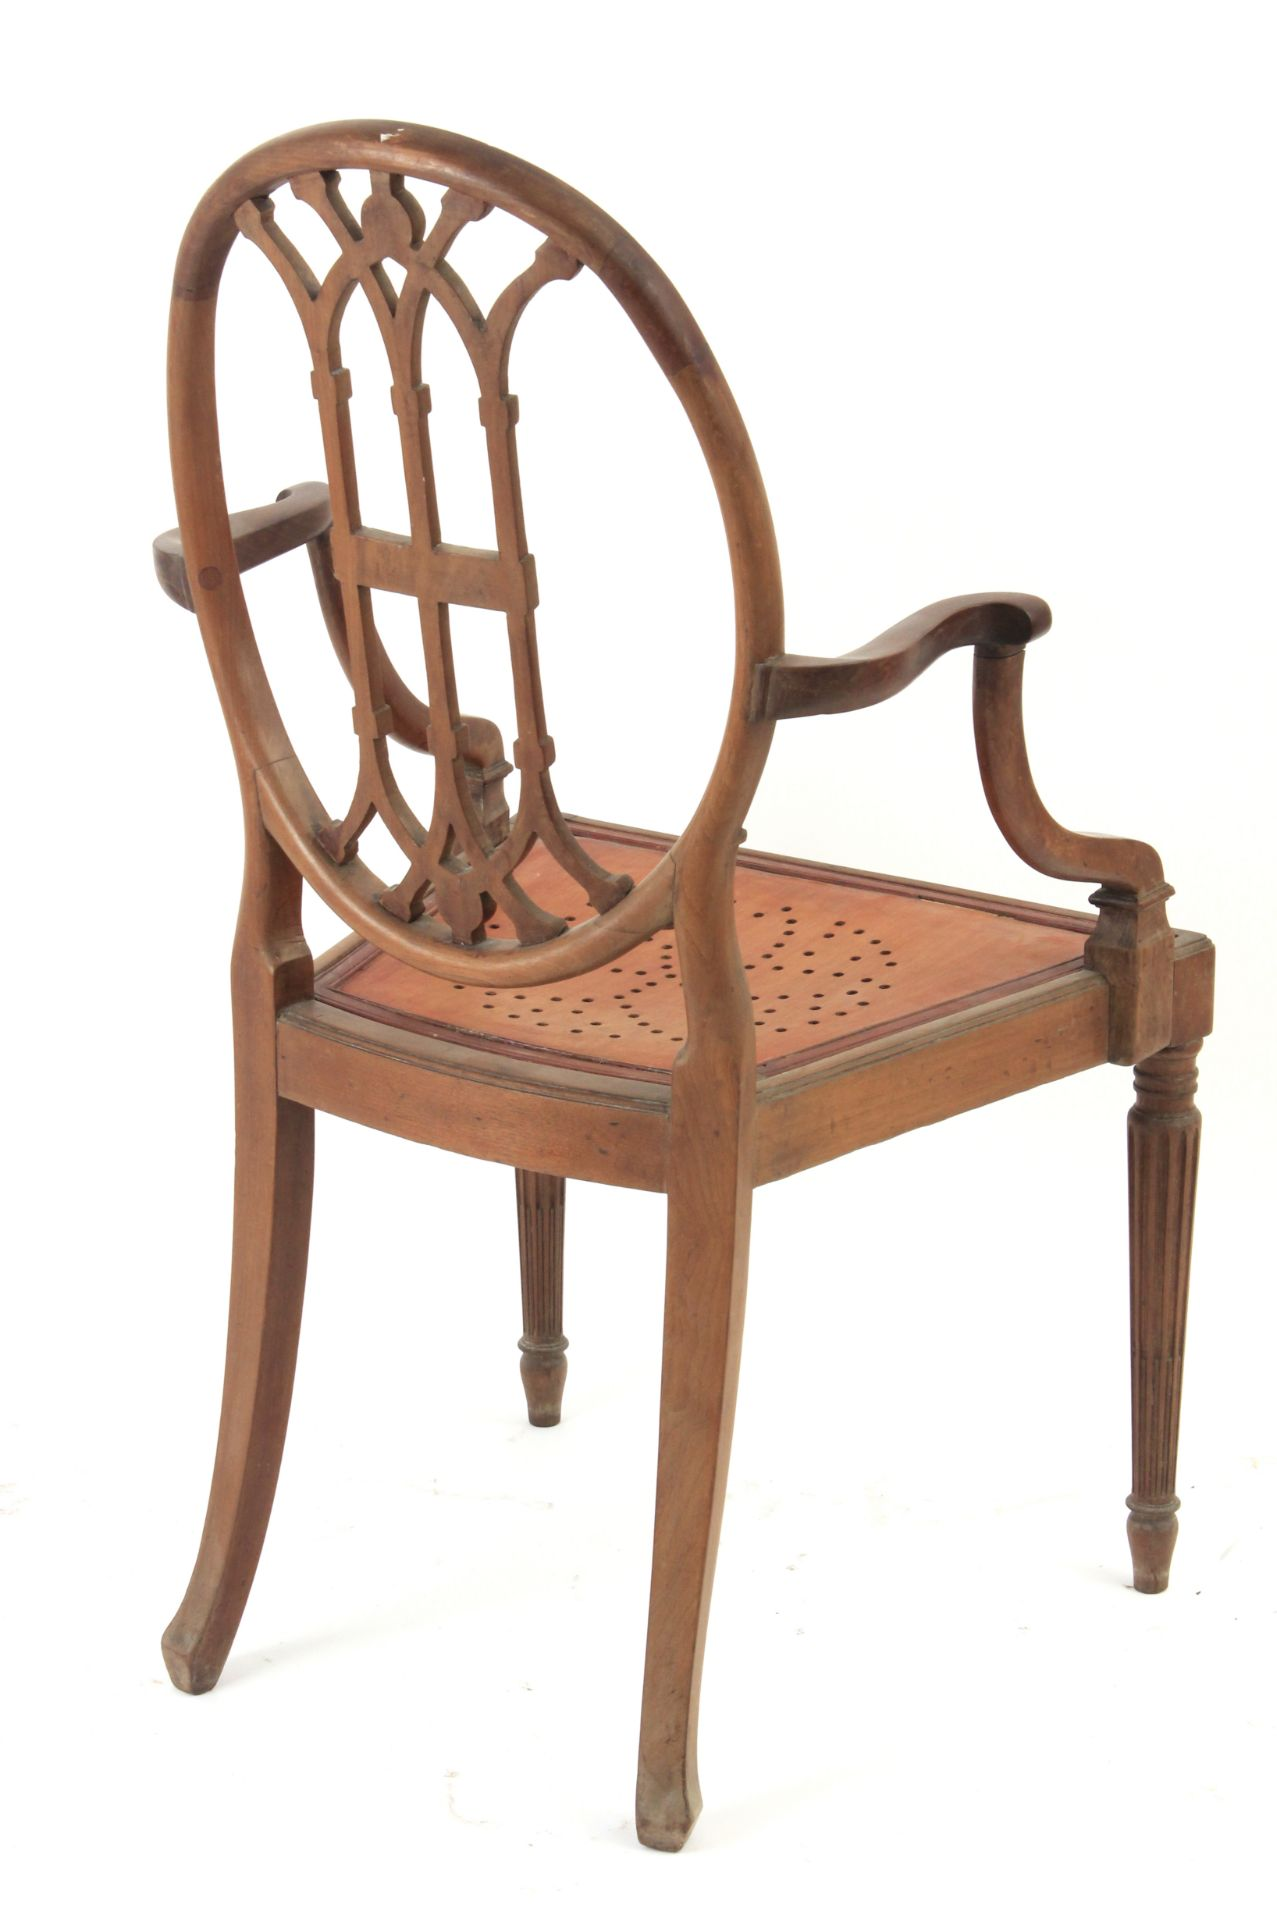 A pair of 19th century mahogany ship chairs - Bild 5 aus 5